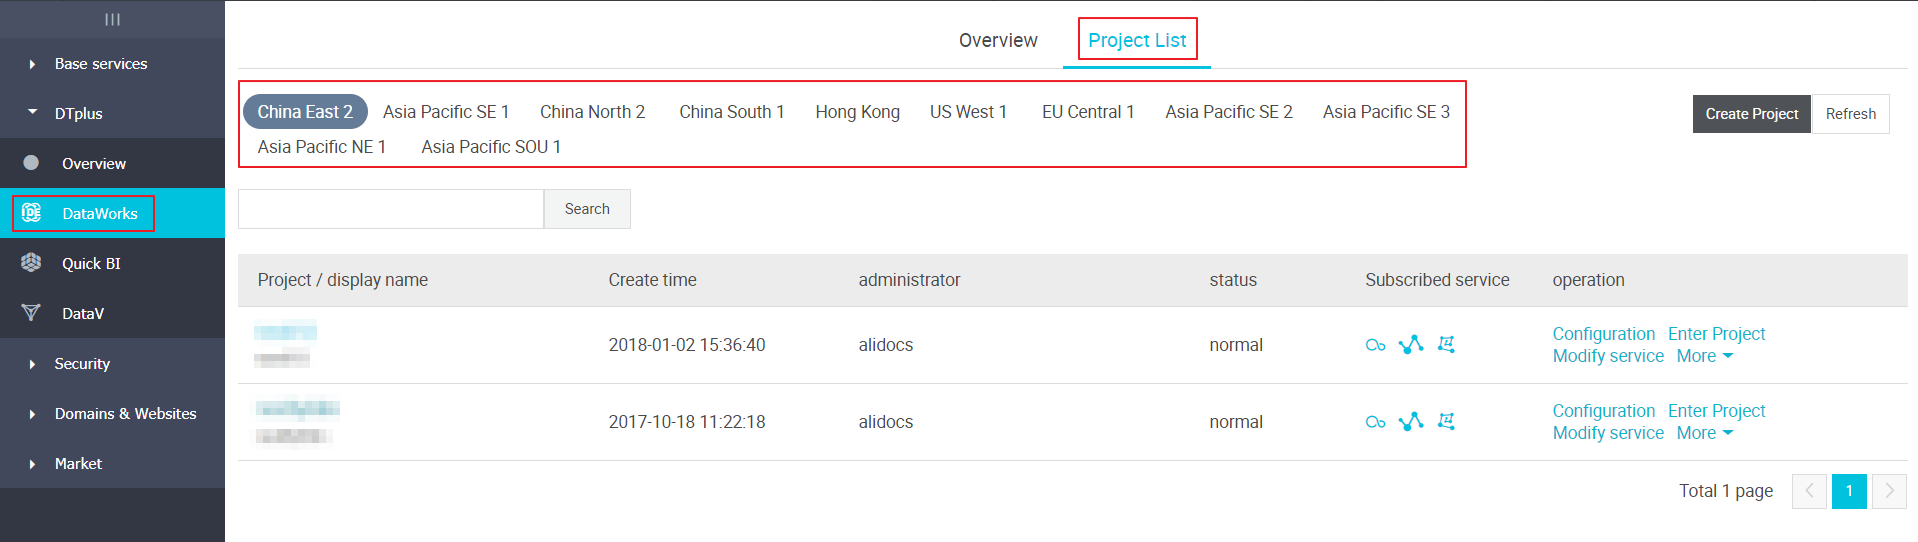 Add whitelist - User Guide| Alibaba Cloud Documentation Center